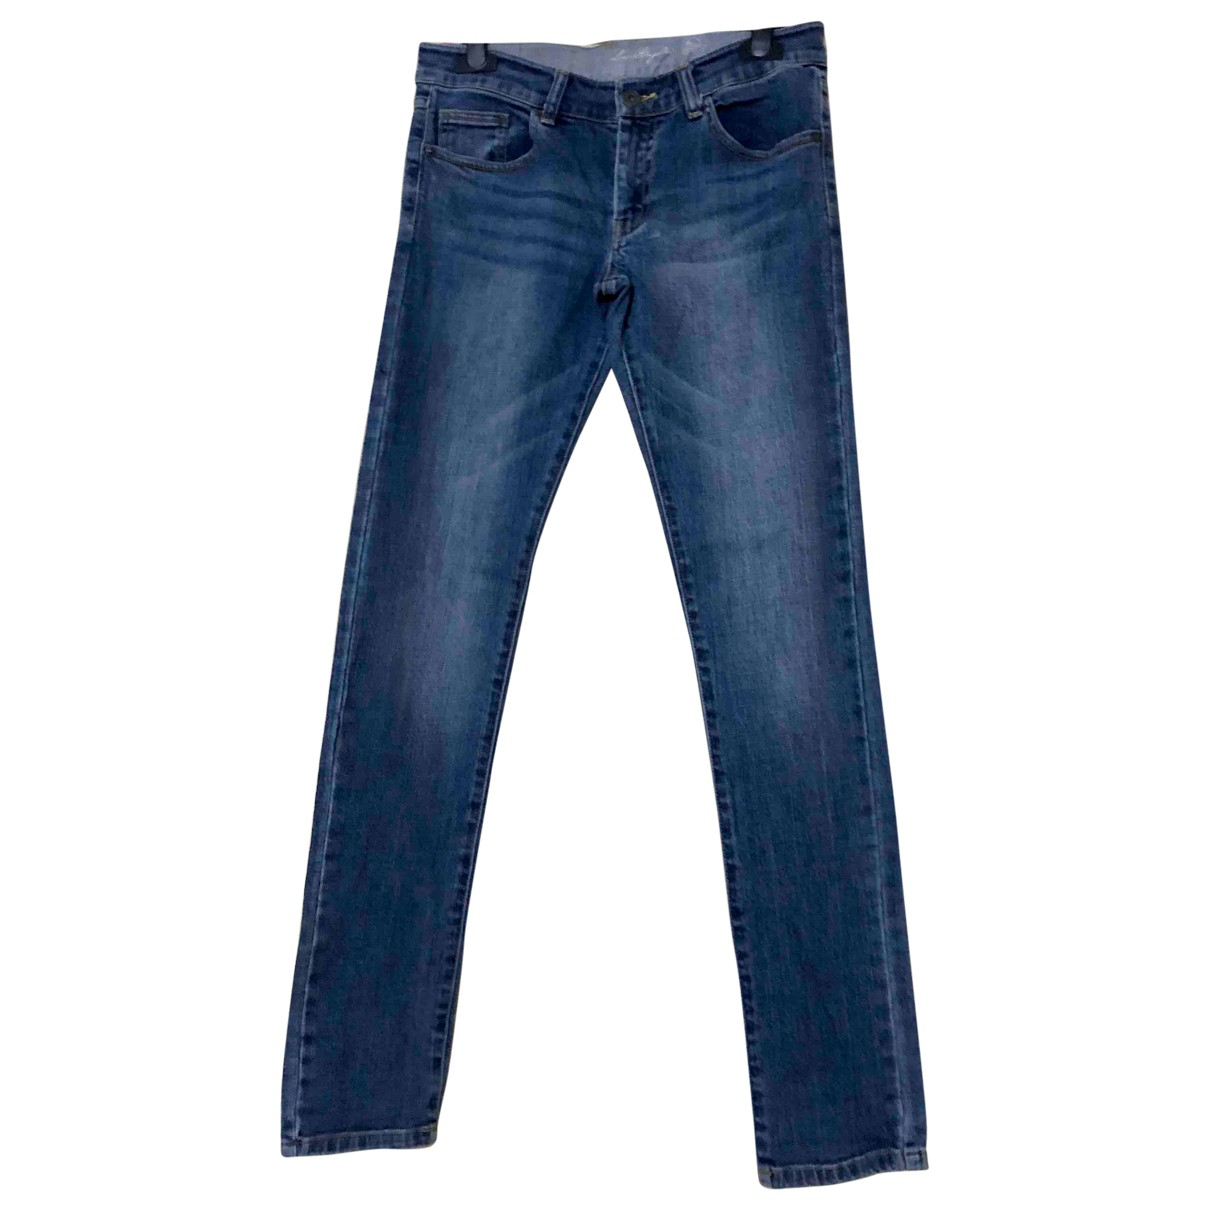 Guess N Cotton Trousers for Kids 12 years - XS UK